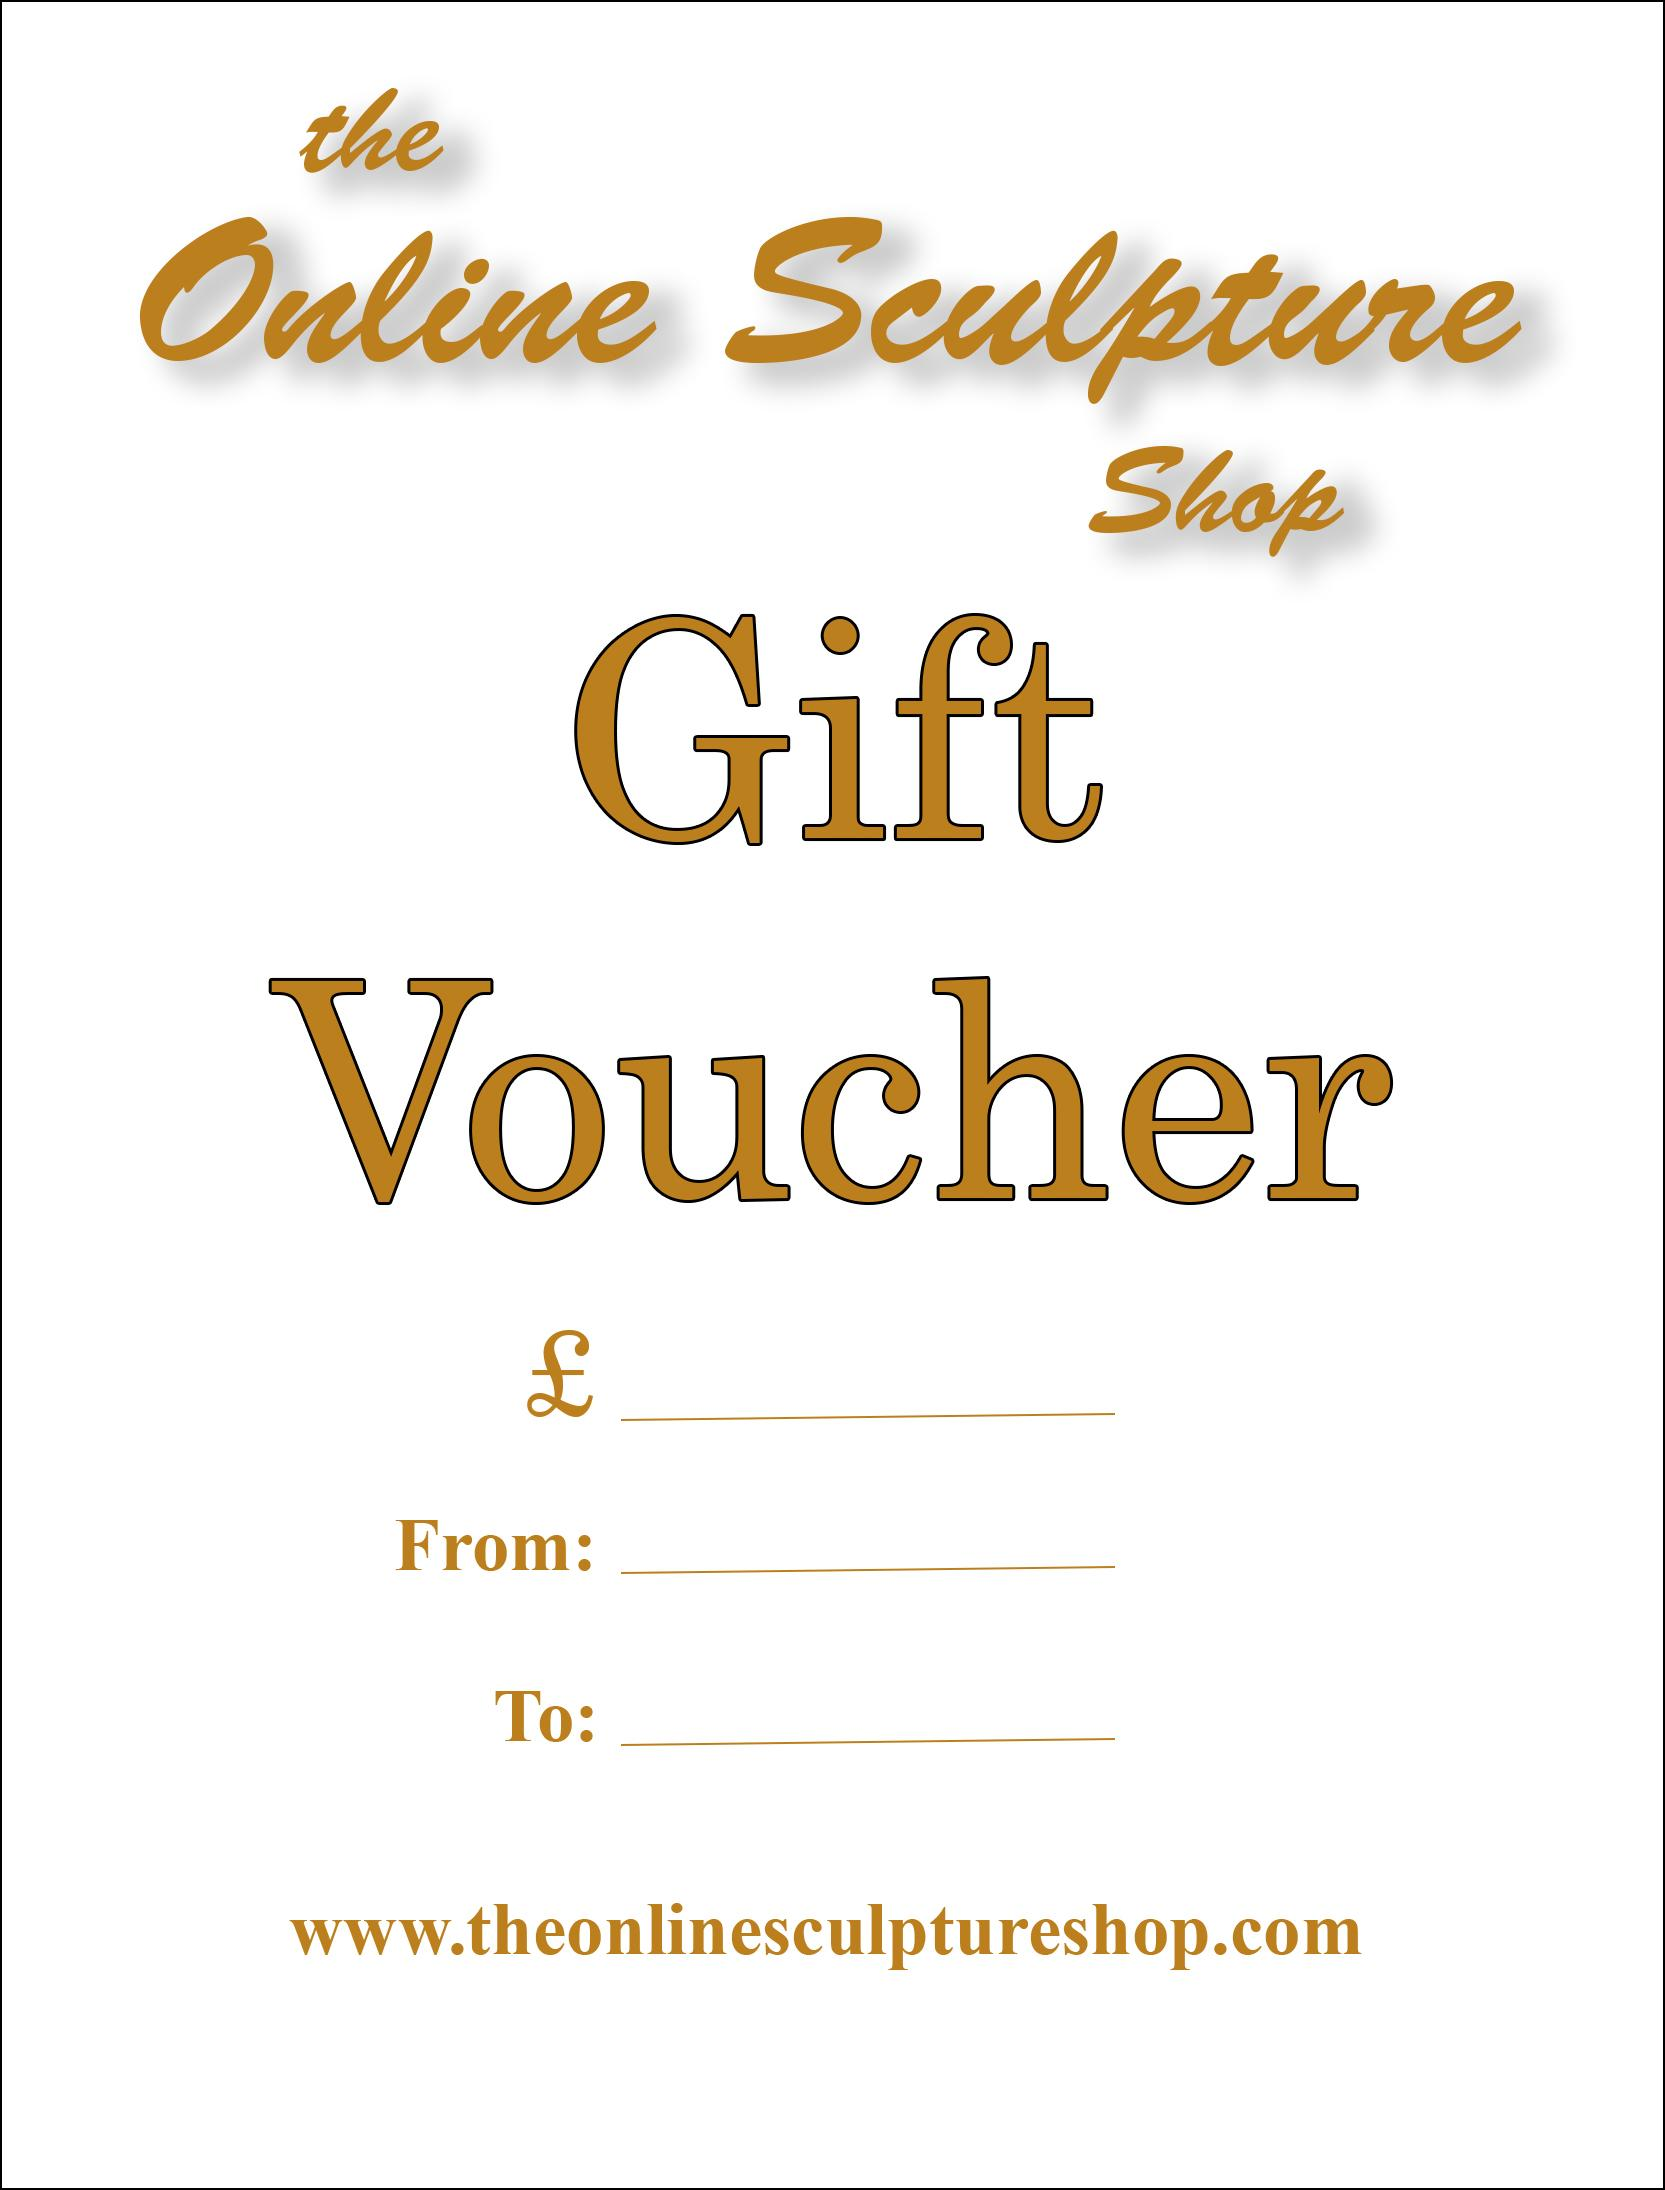 Gift Voucher - the Online Sculpture Shop